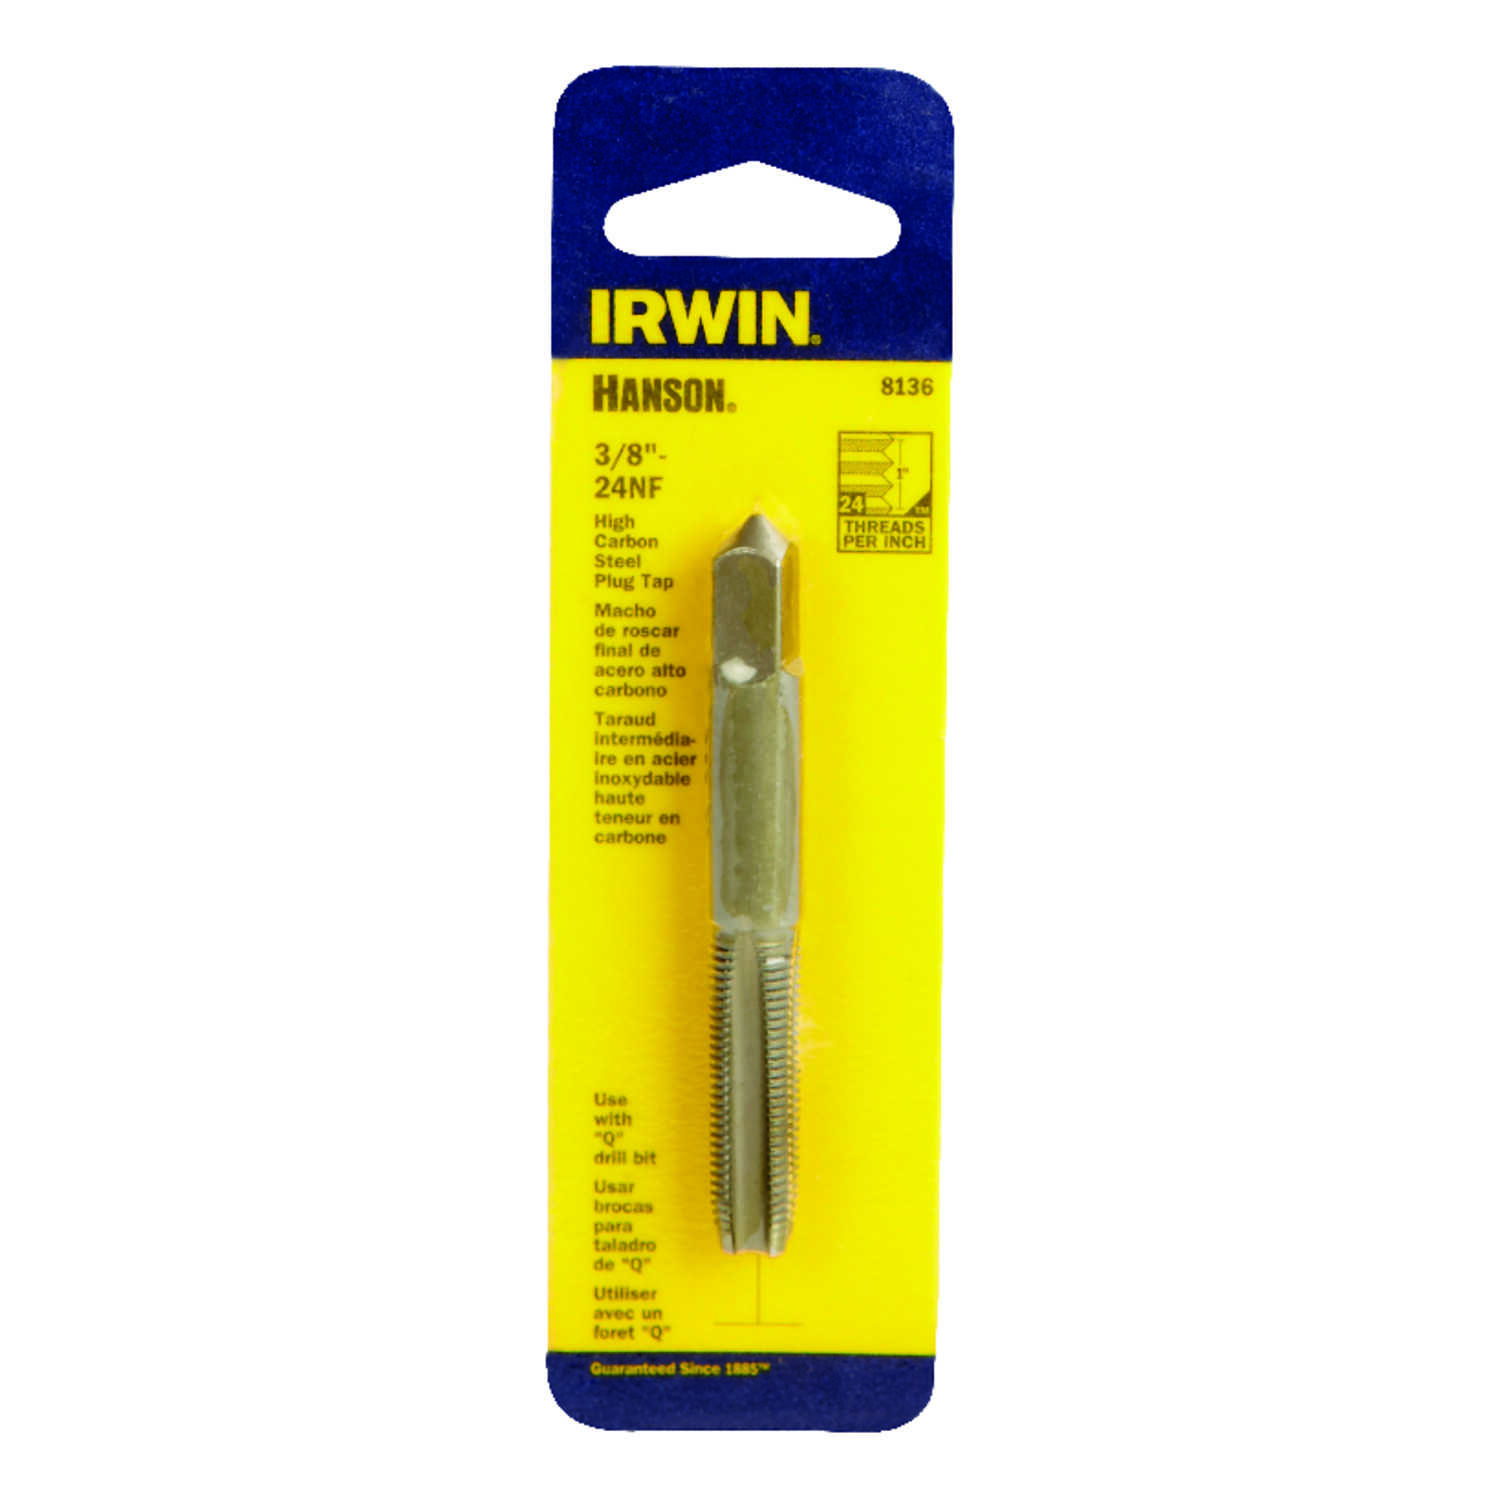 Irwin  Hanson  High Carbon Steel  SAE  Fraction Tap  3/8 in.-24NF  1 pc.